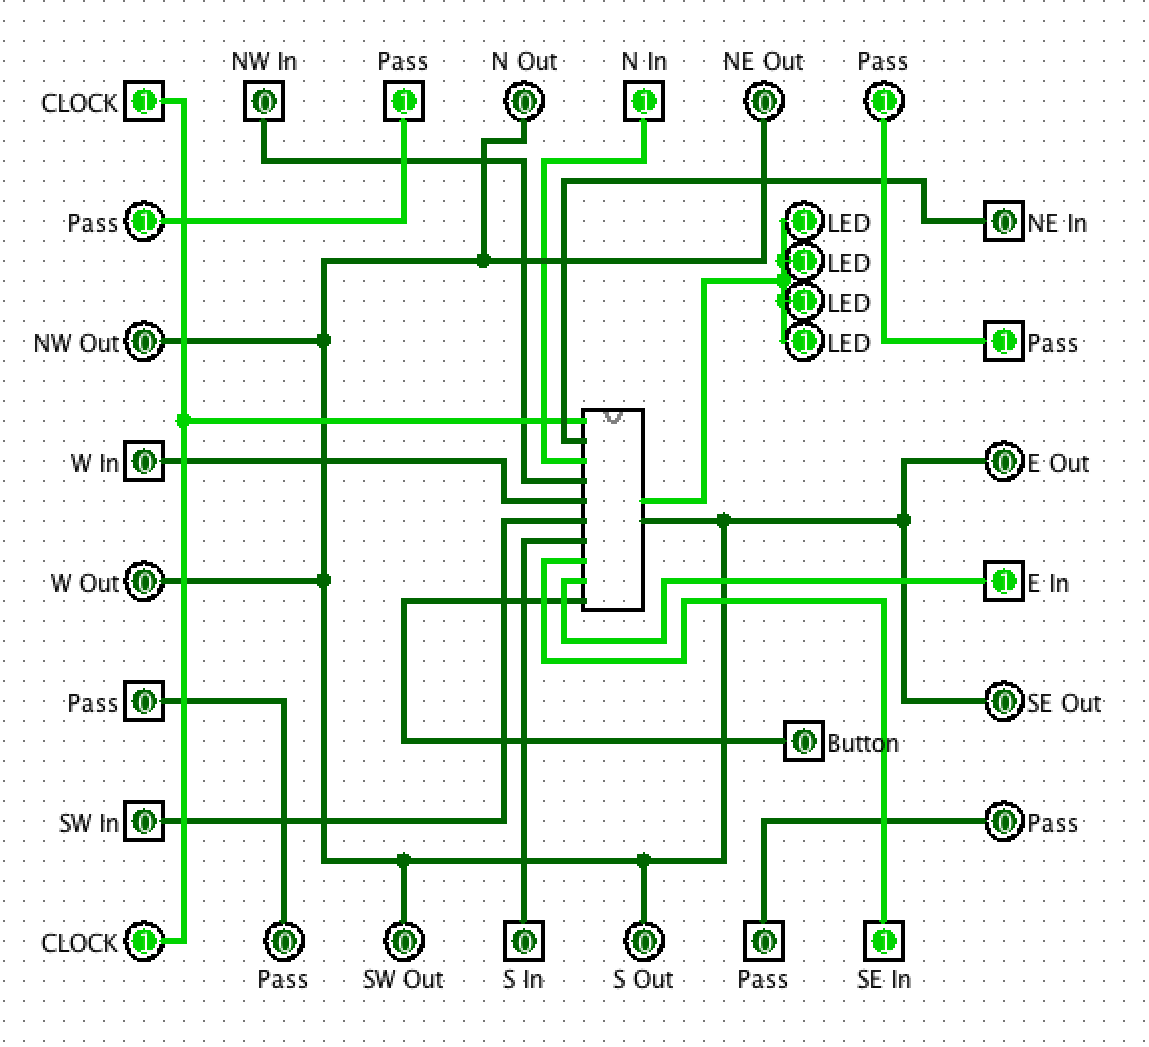 Modular Conways Game Of Life In Logisim Hexahedria Random Number Generator Circuit Diagram Each Cell Consists A Subcircuit And 4 Virtual Leds The Contents Are Mainly Wires That Connect All Outputs To Brain